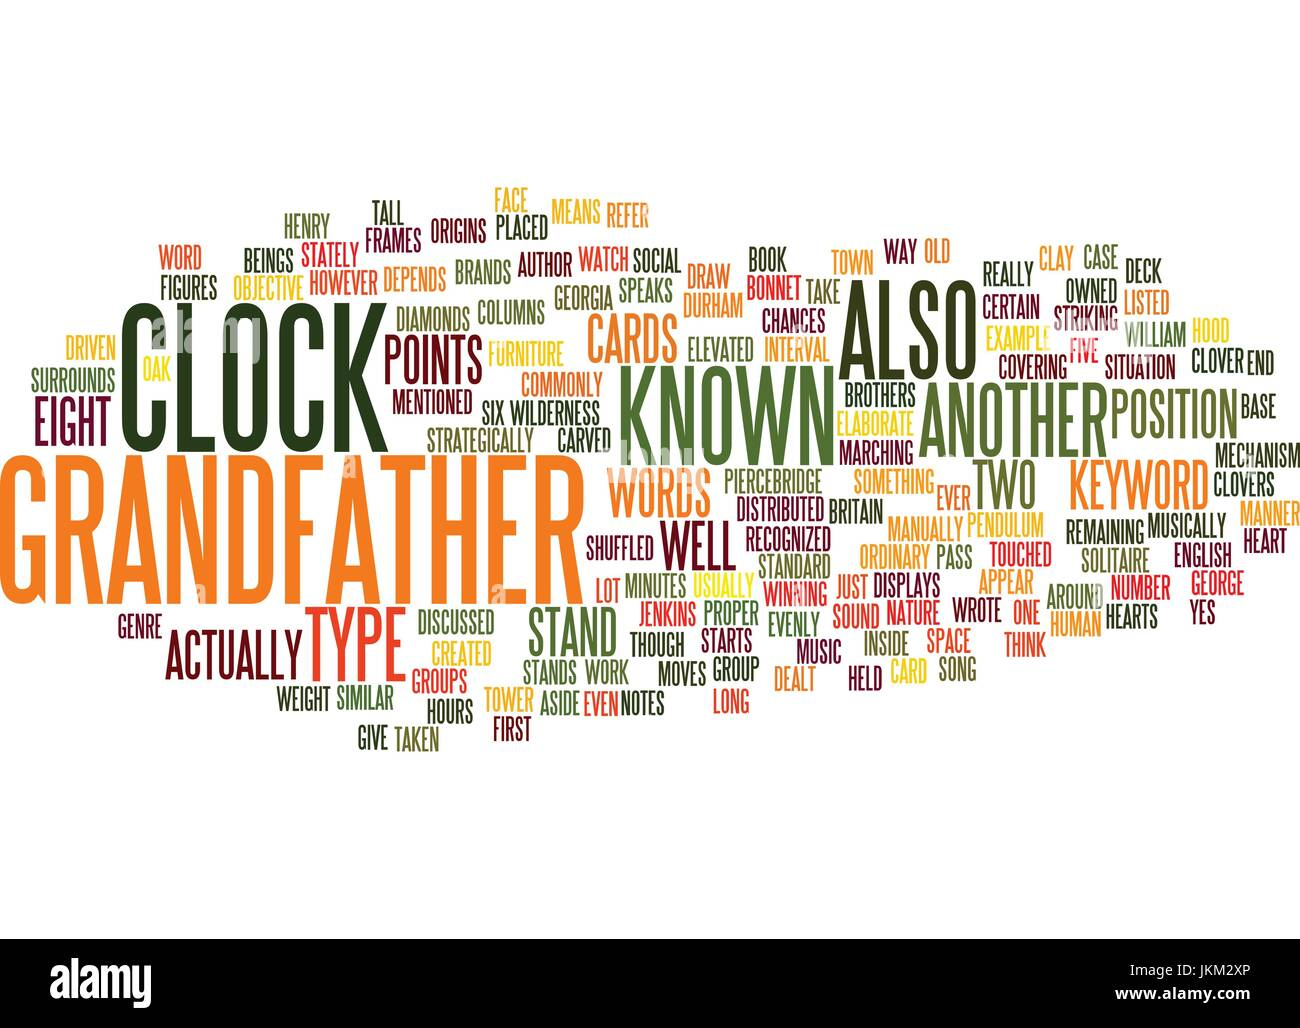 Grandfather Clock Diagram Stock Vector Images Alamy Grandfathers Text Background Word Cloud Concept